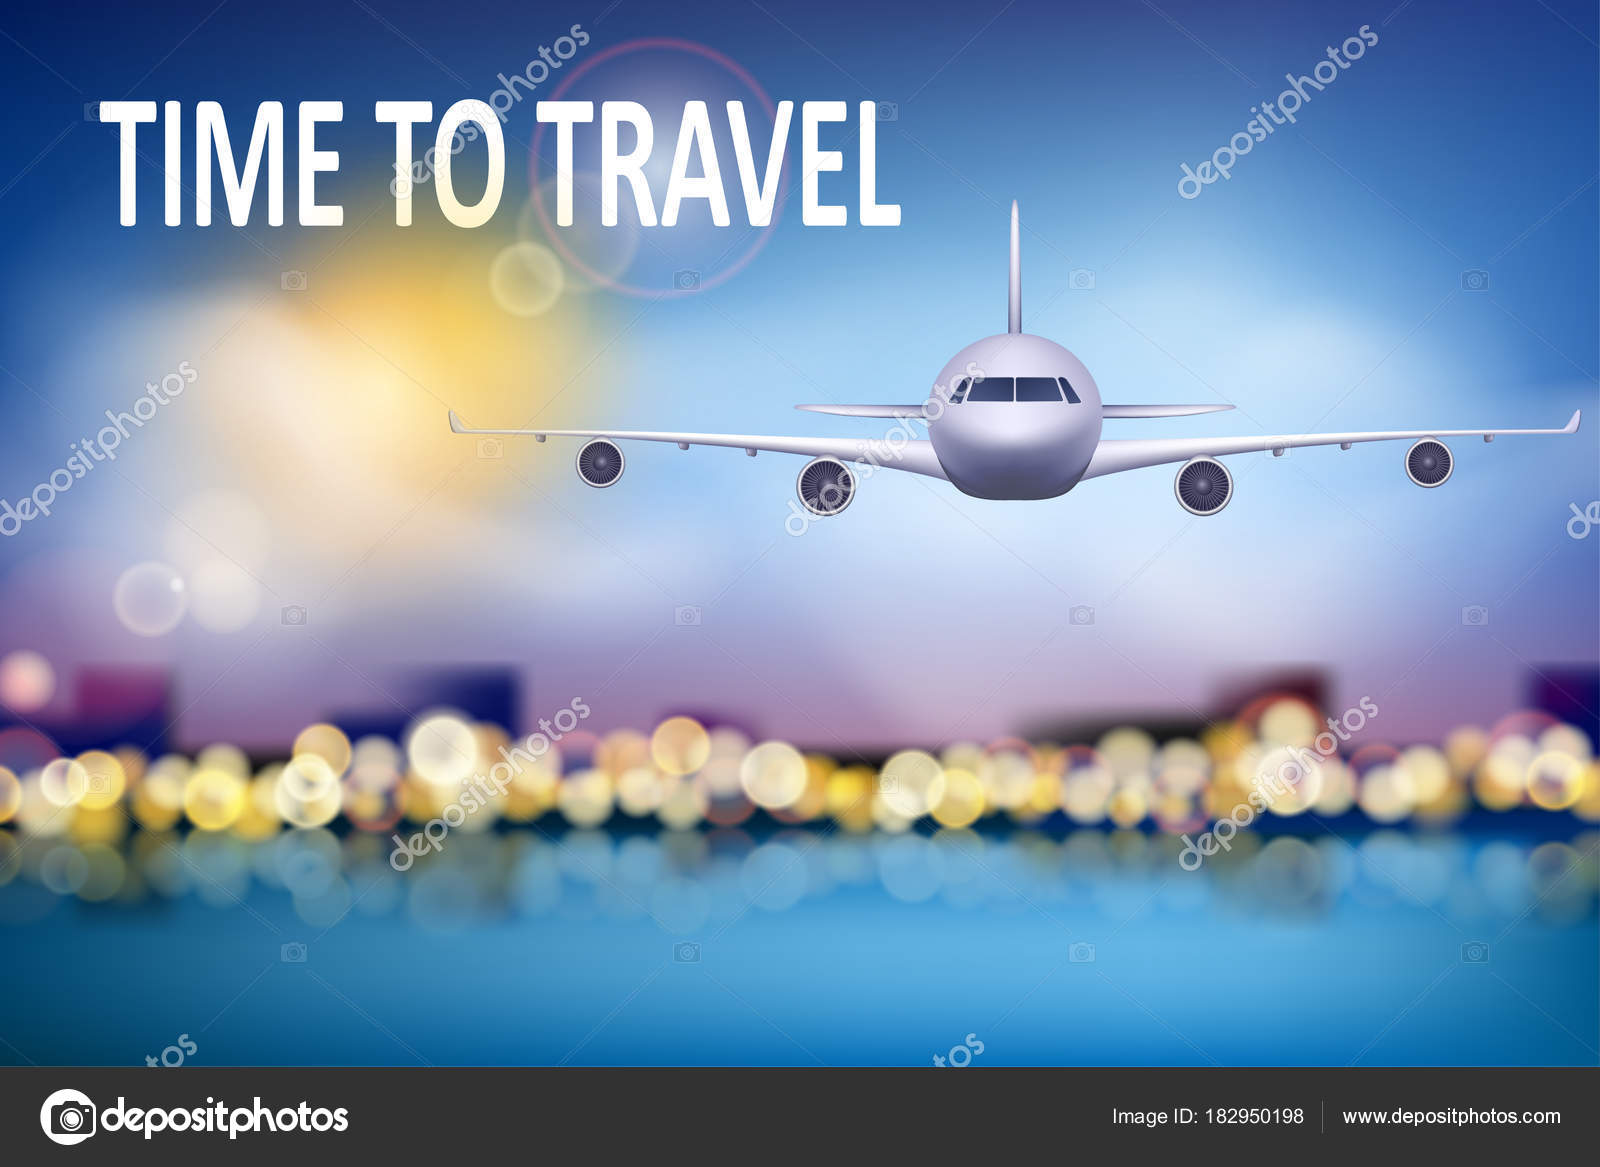 Summer Travel Illustration With Airplane On Blue Sunny Background Soft Bokeh And Clouds Brochure In Tourism Theme Agency Advertisement